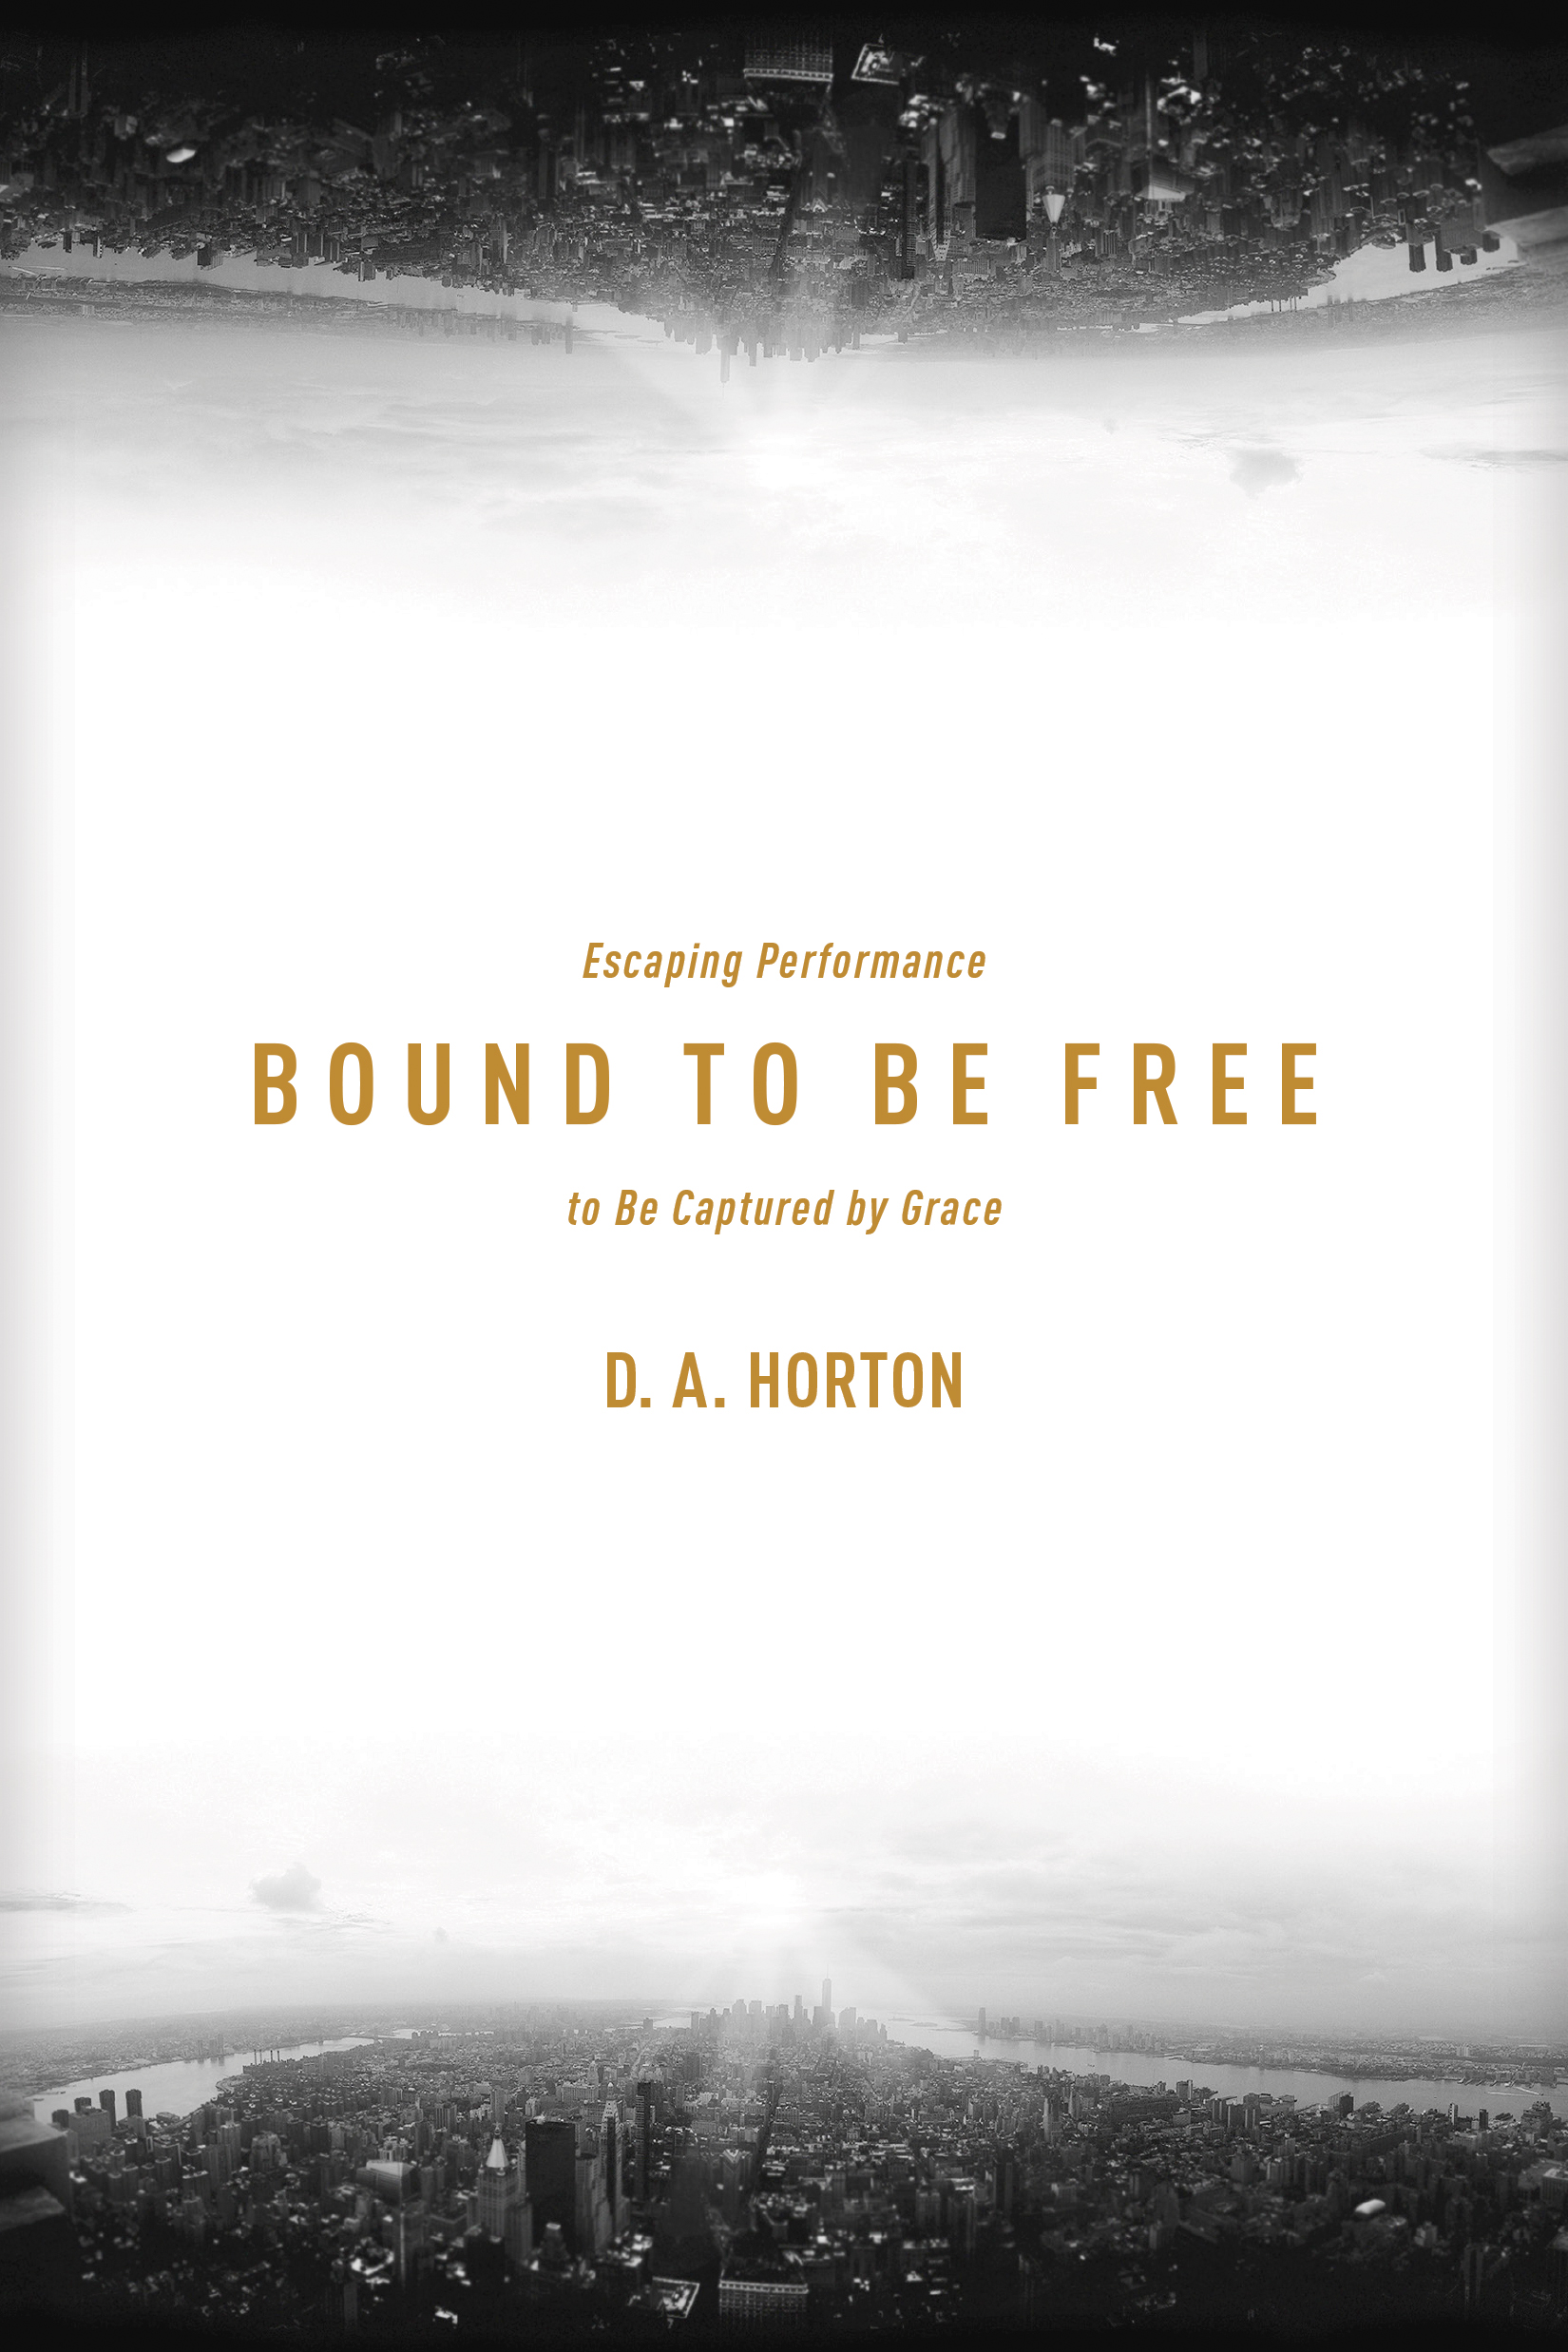 Cover of Bound to Be Free, by D. A. Horton